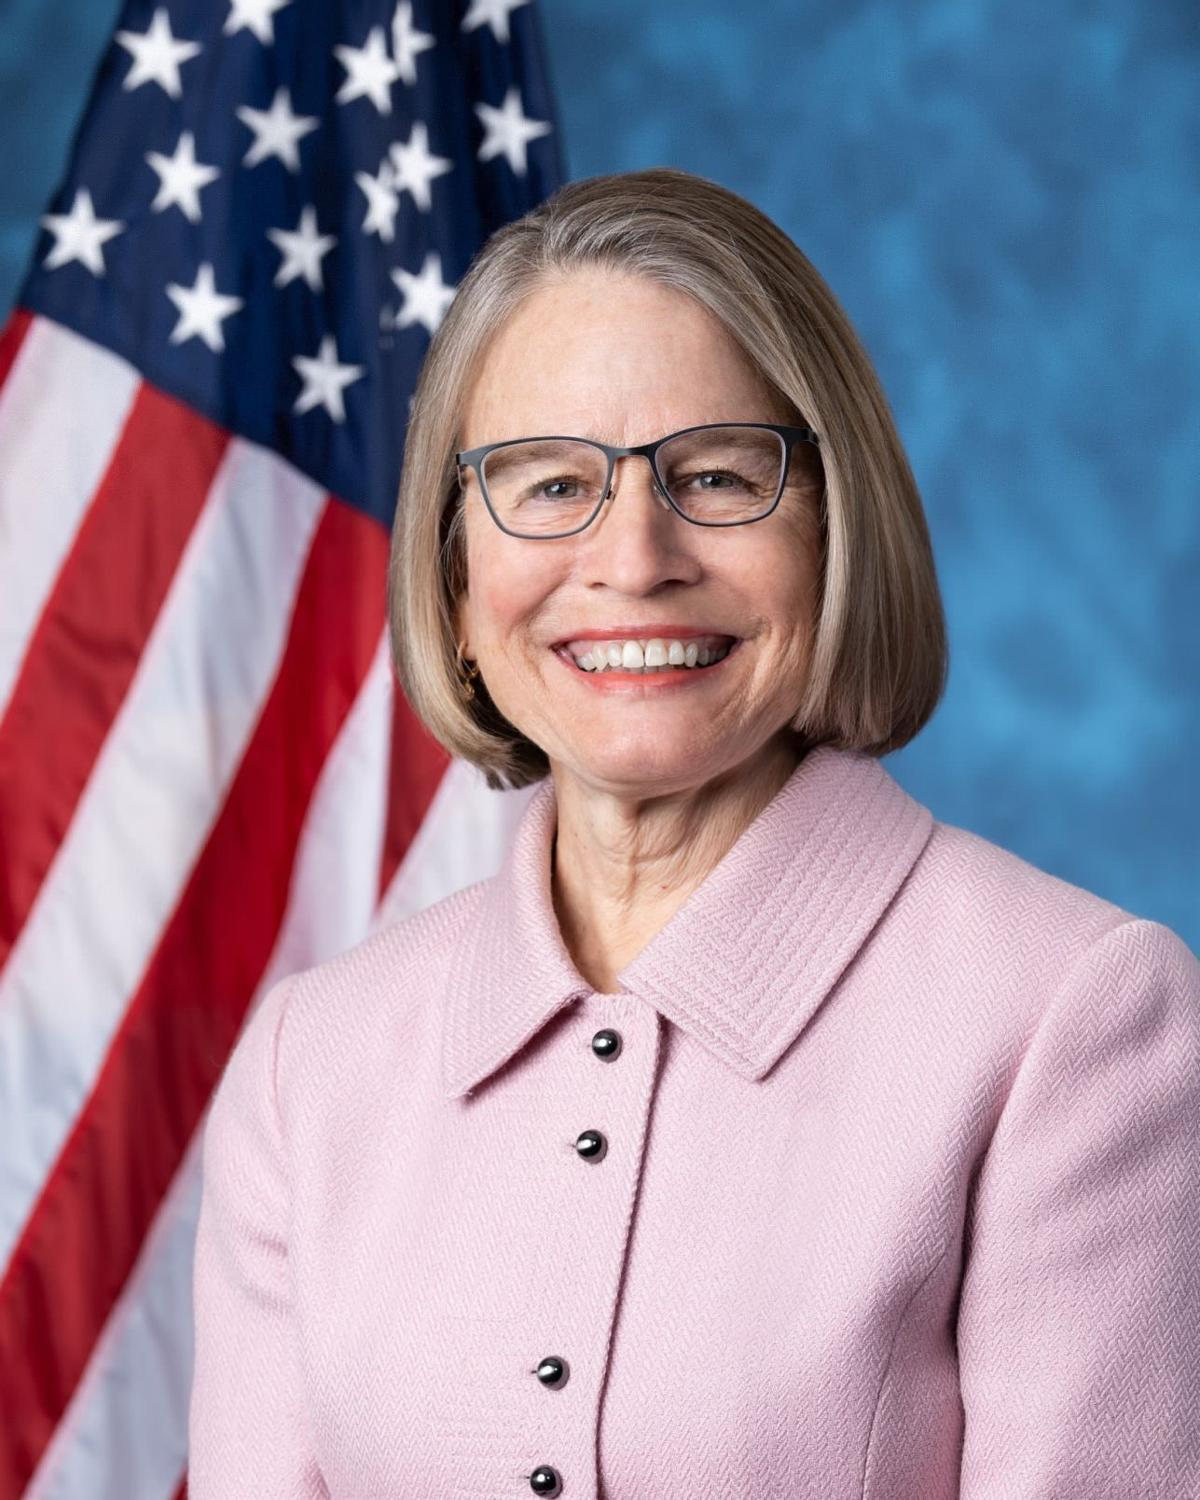 Miller-Meeks official congressional photo